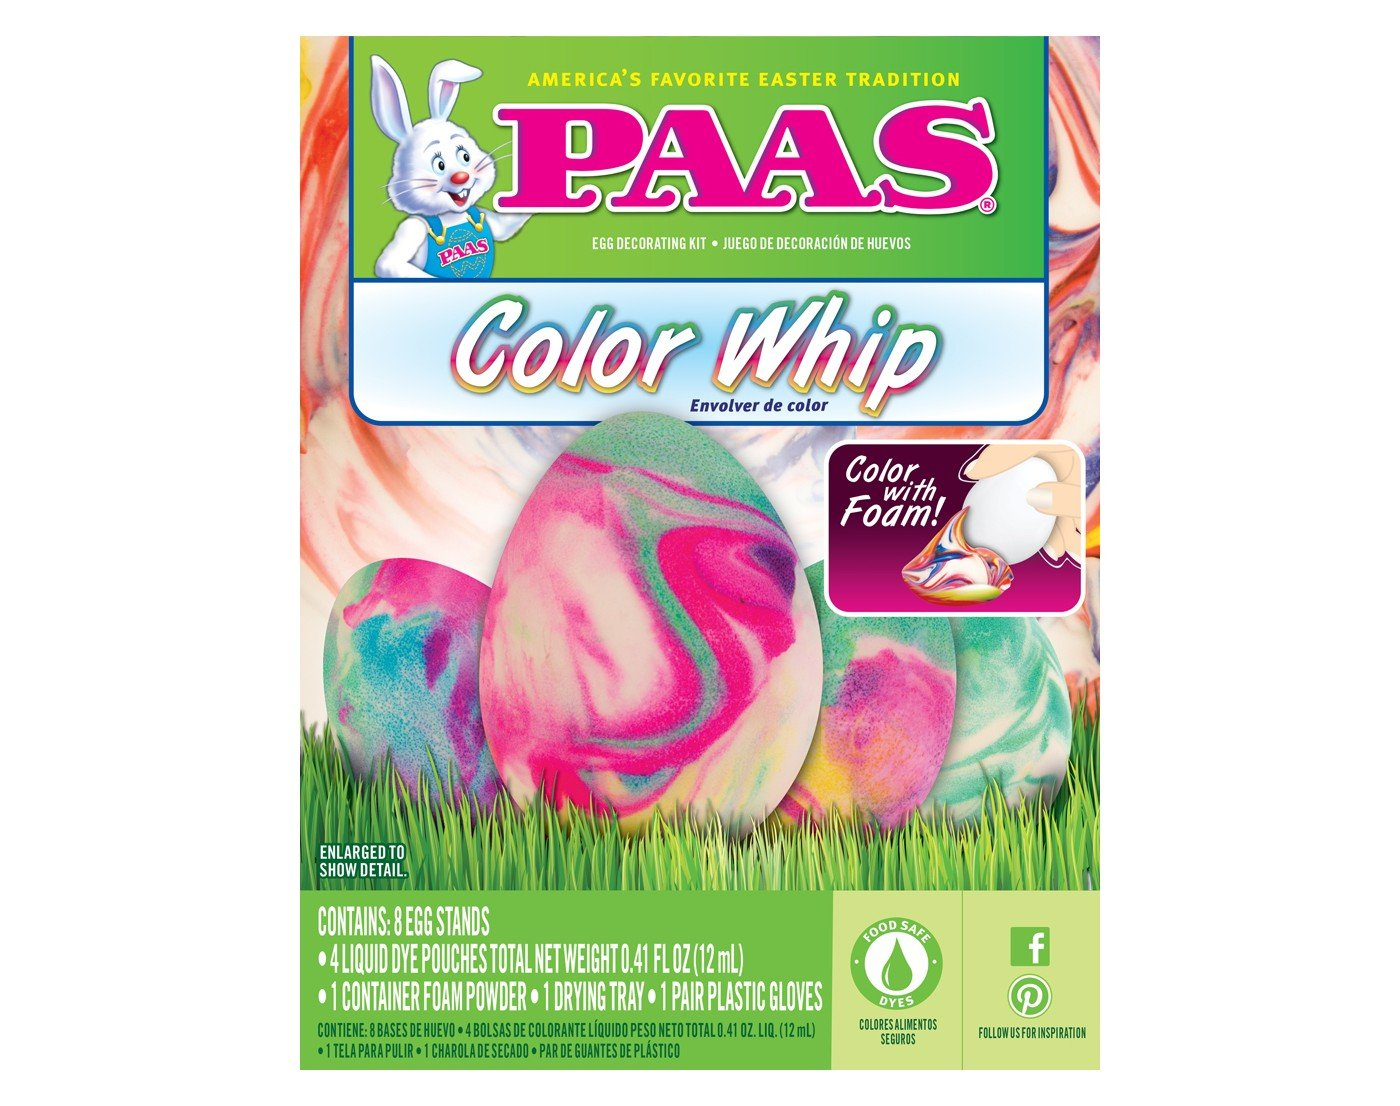 Paas Color Whip Easter Egg Decorating Kit